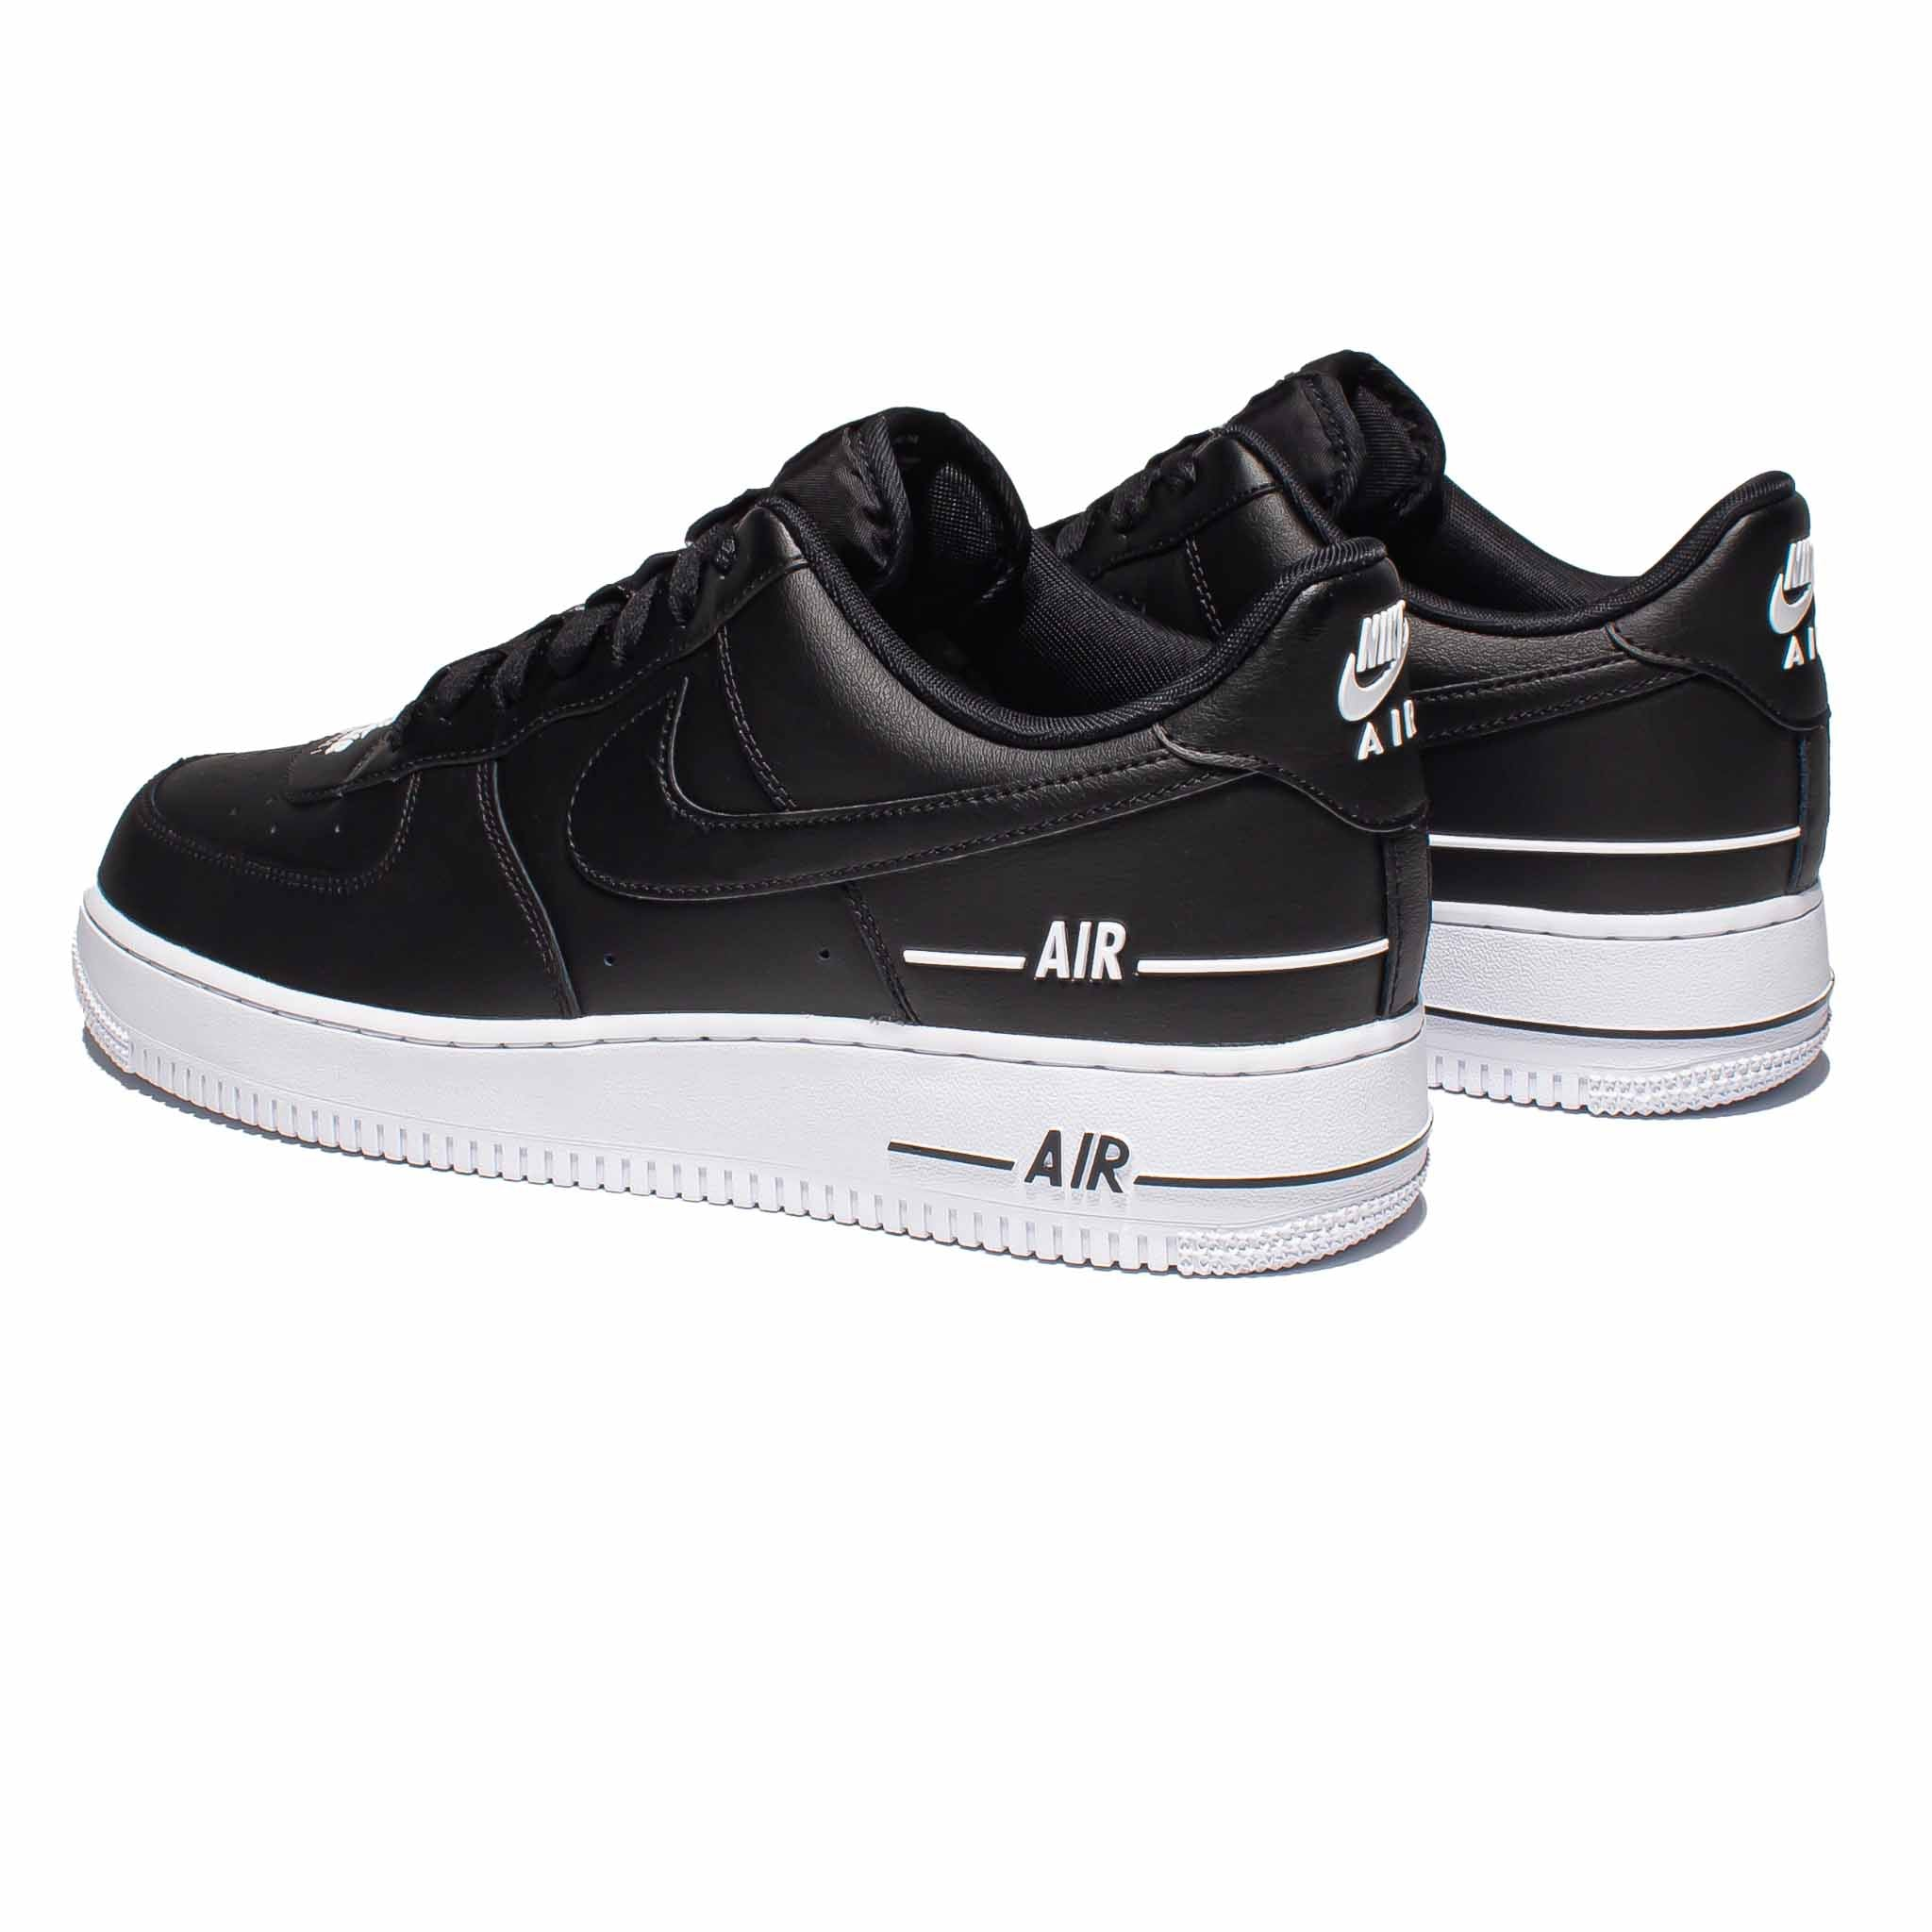 Nike Air Force 1 '07 LV8 3 'Double Air' Black